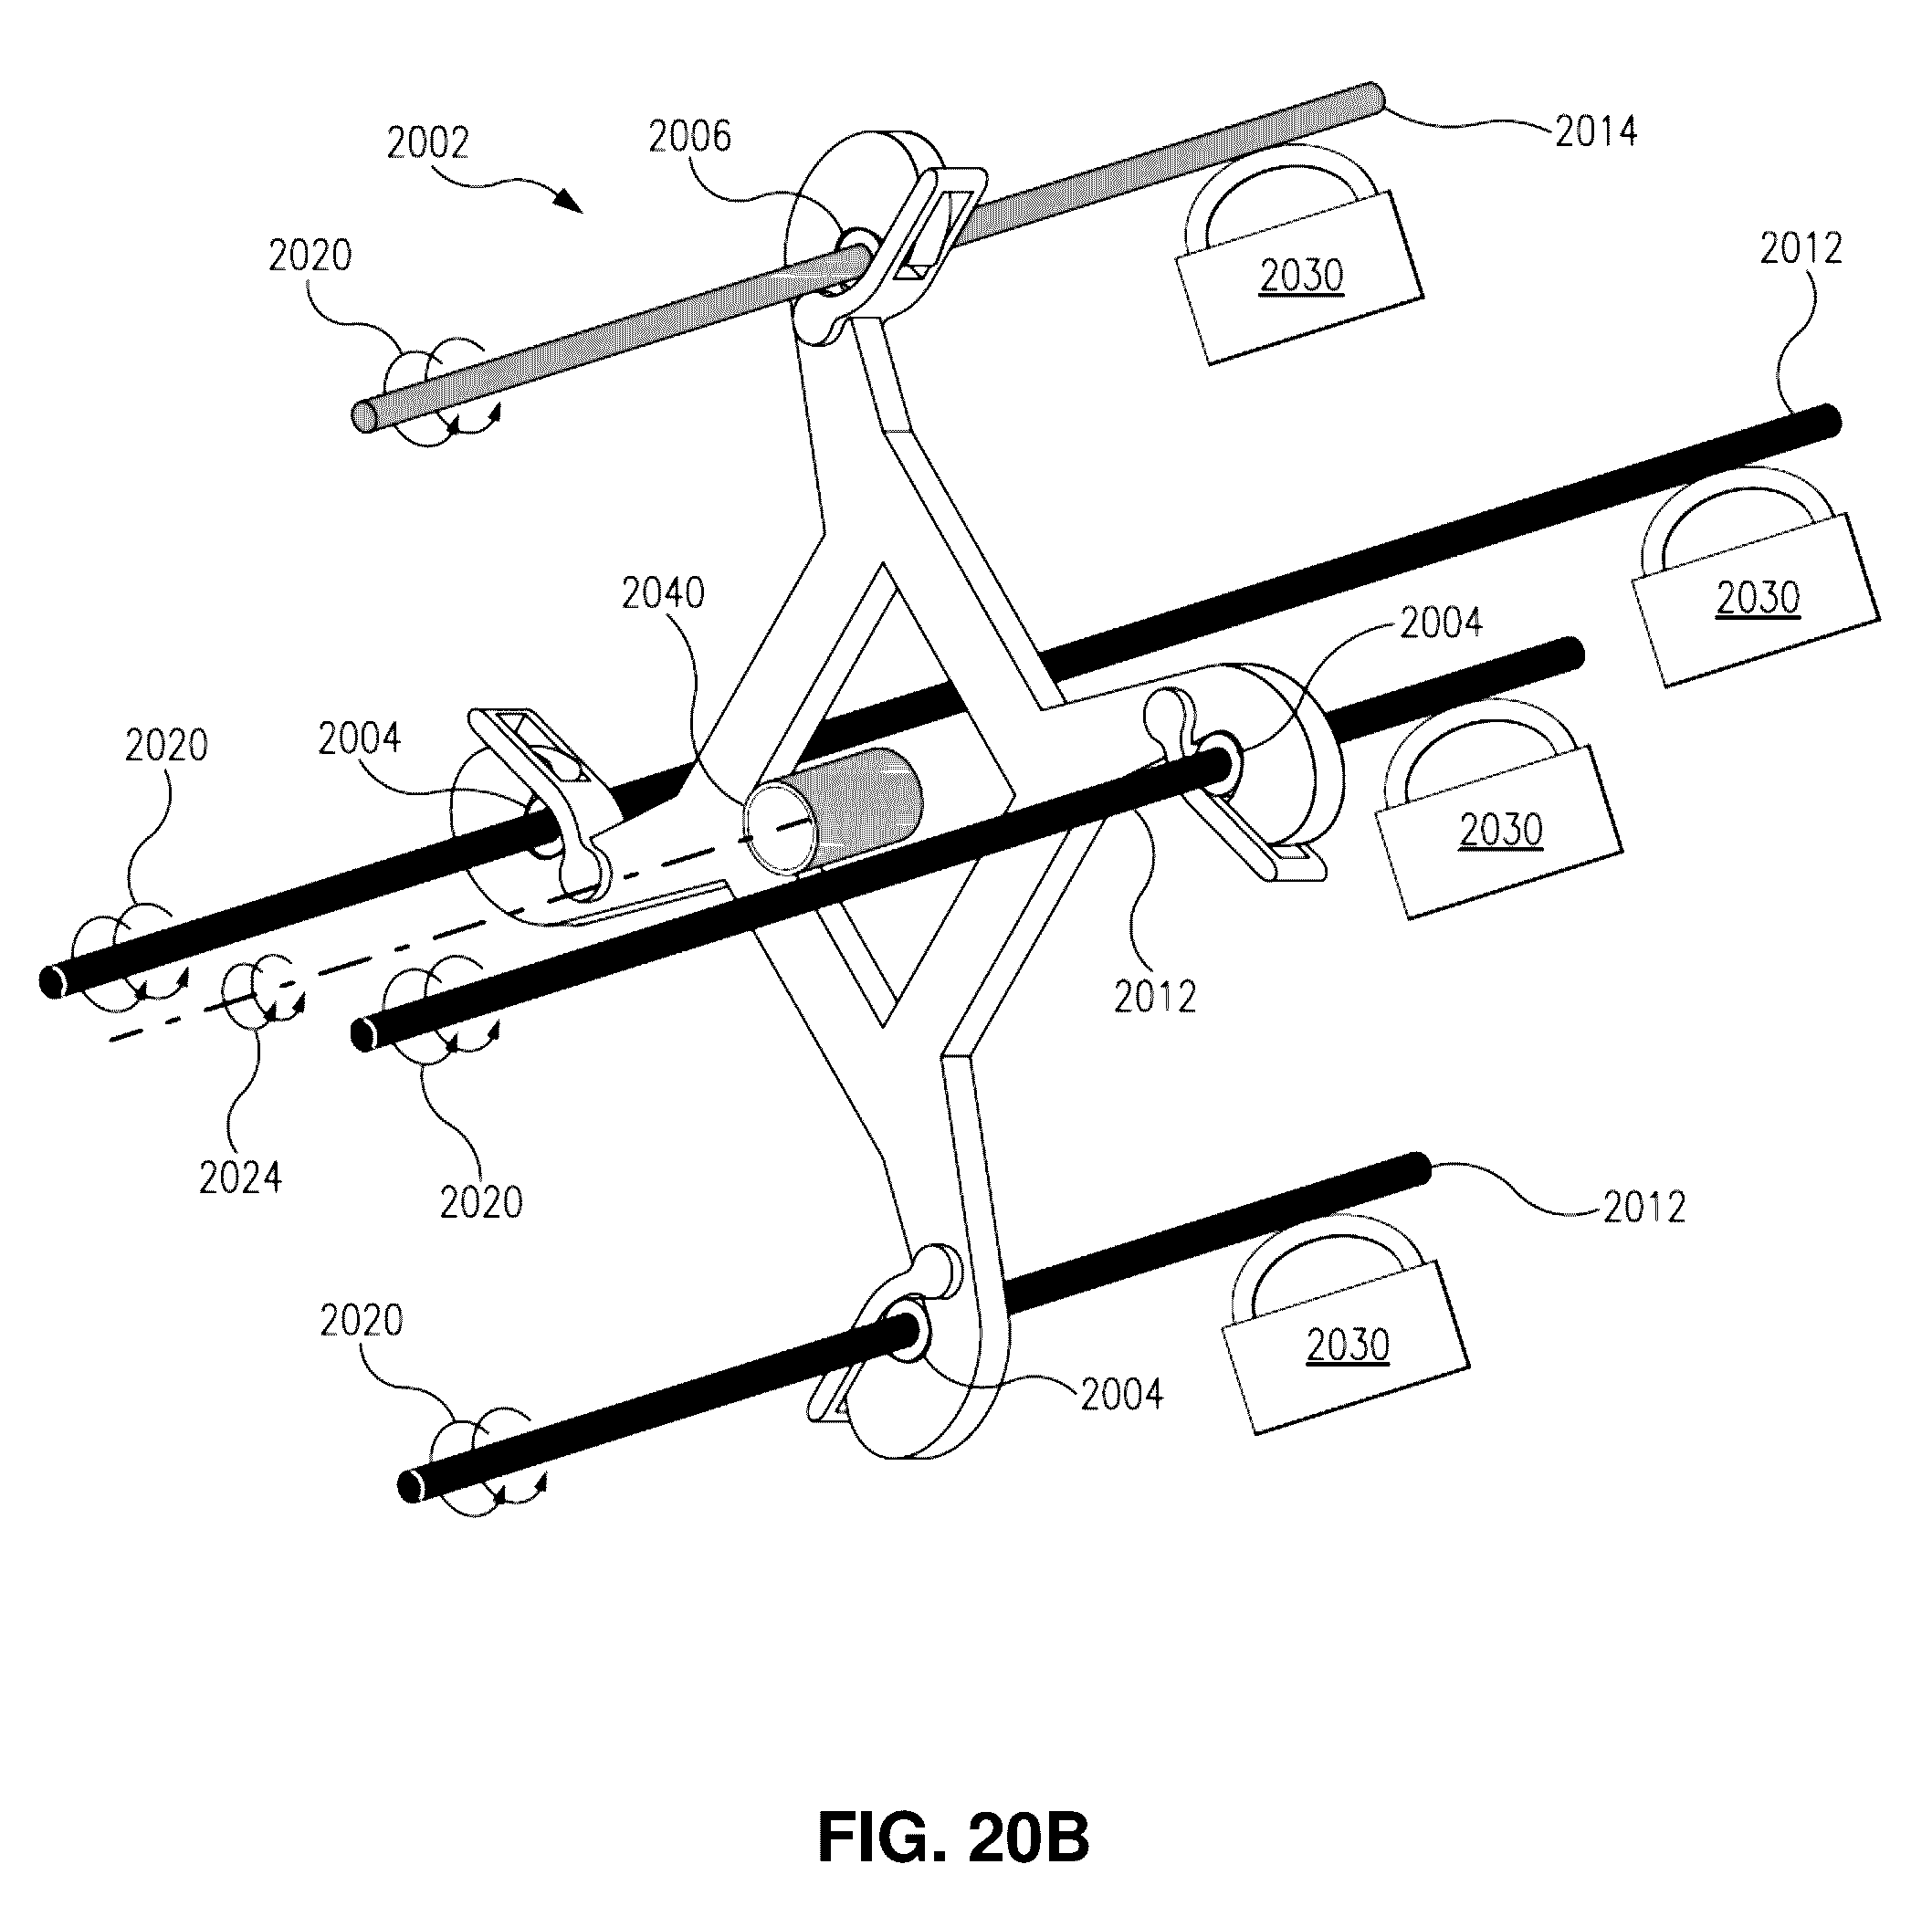 us9503189b2 method and apparatus for arranging munication 1952 Henry J Car us9503189b2 method and apparatus for arranging munication sessions in a munication system patents